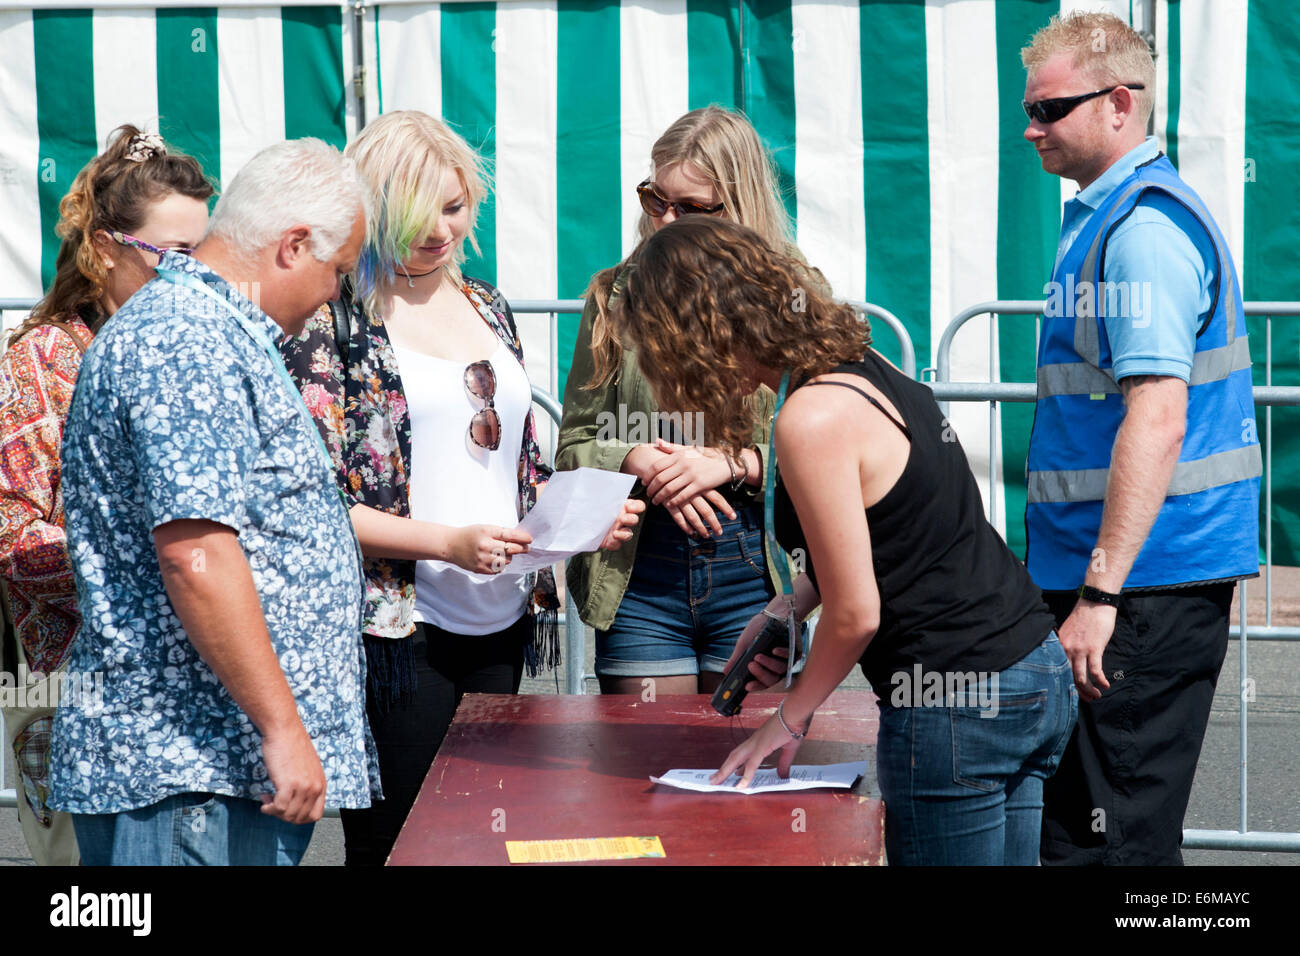 visitors arrive at security at the victorious festival 2014 southsea england uk Stock Photo